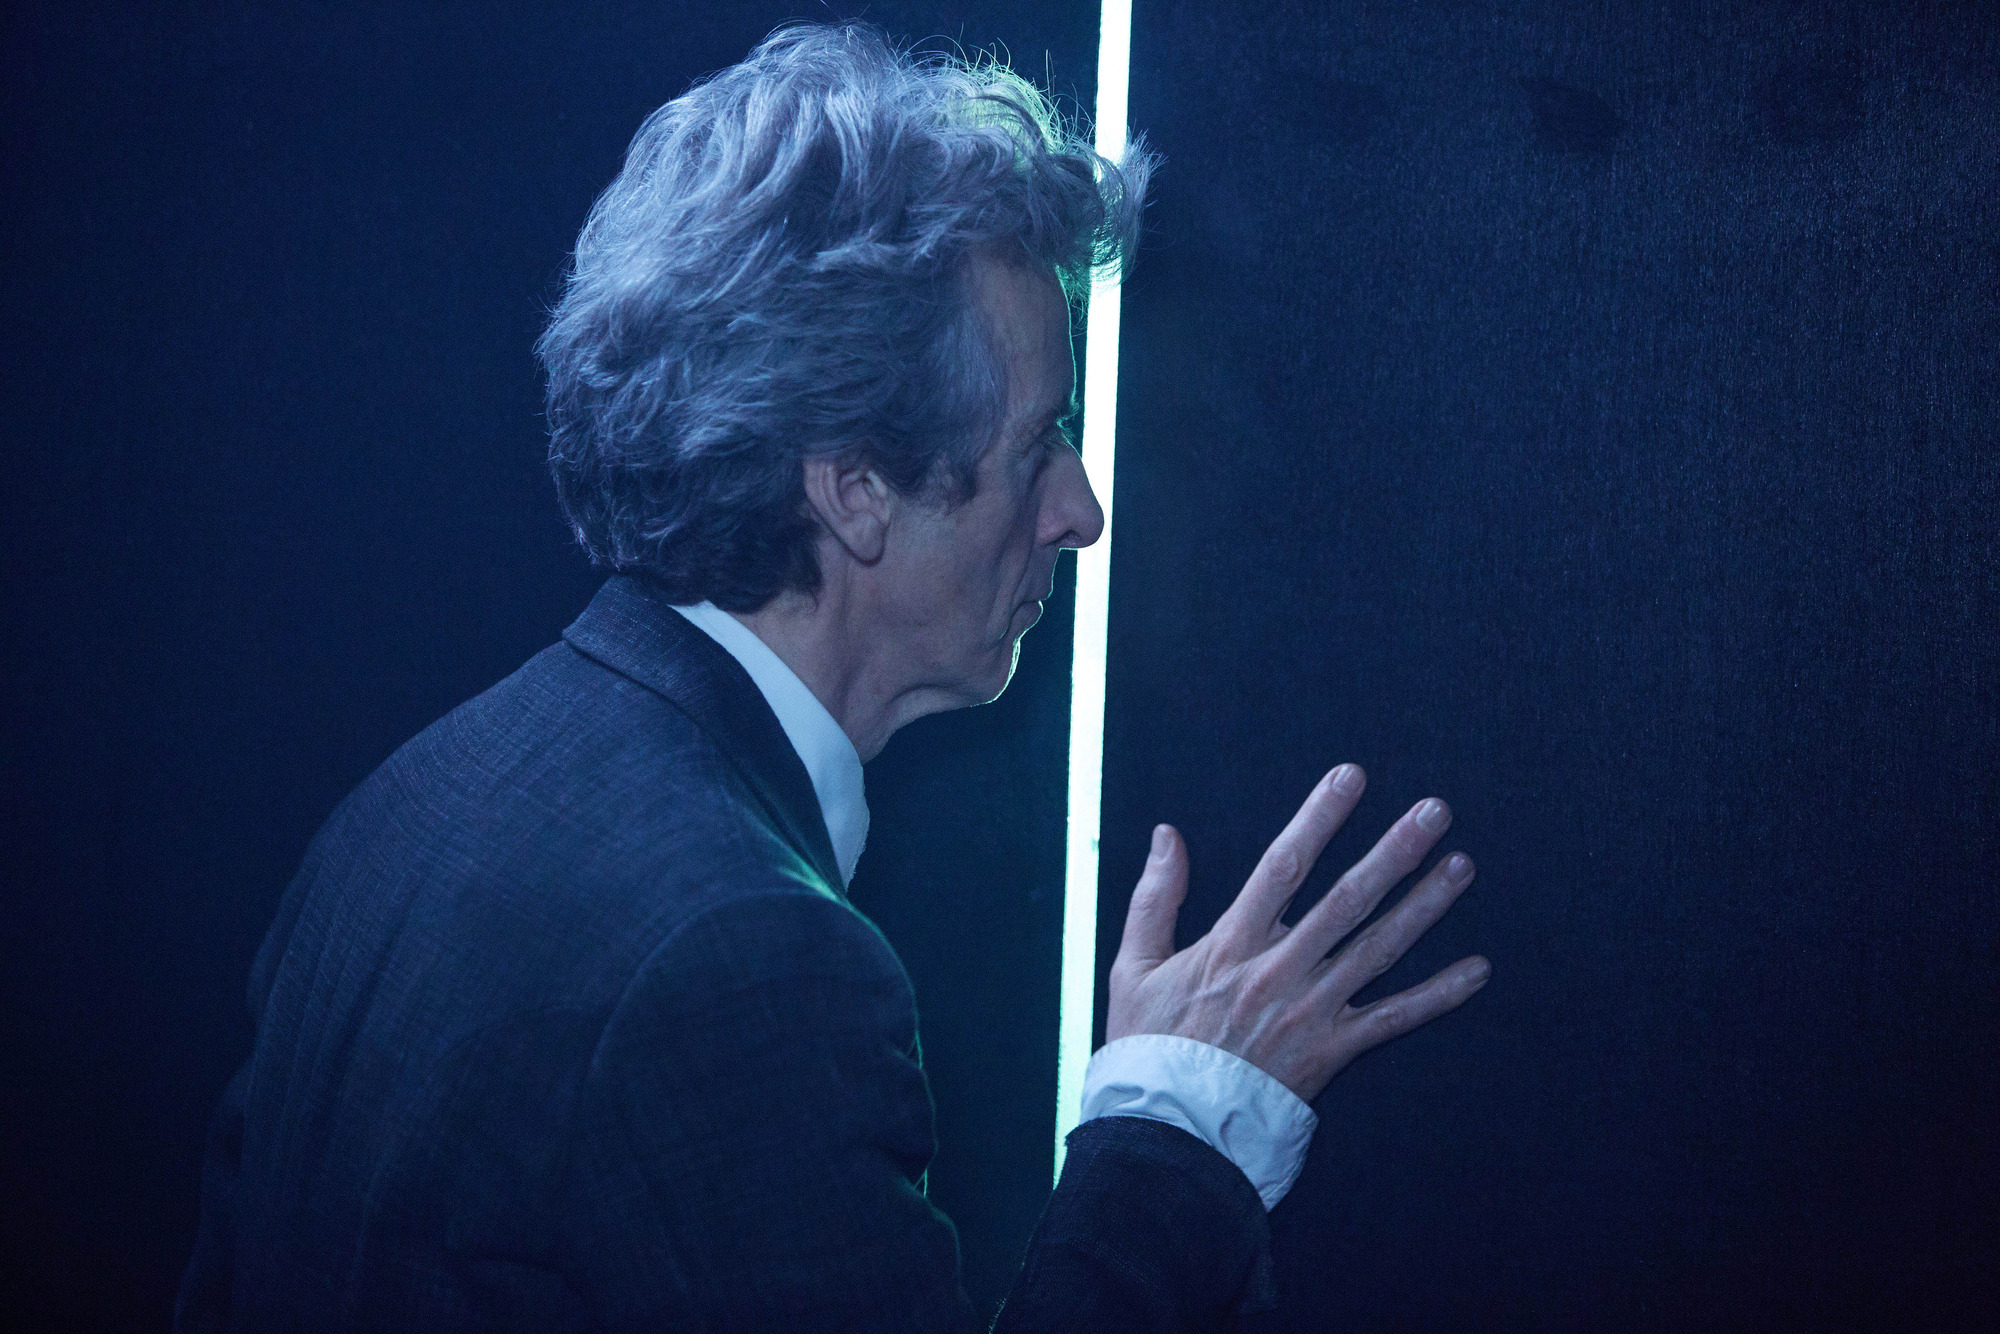 The Lie Of The Land: The Doctor (Peter Capaldi) (Credit: BBC/BBC Worldwide (Simon Ridgway))